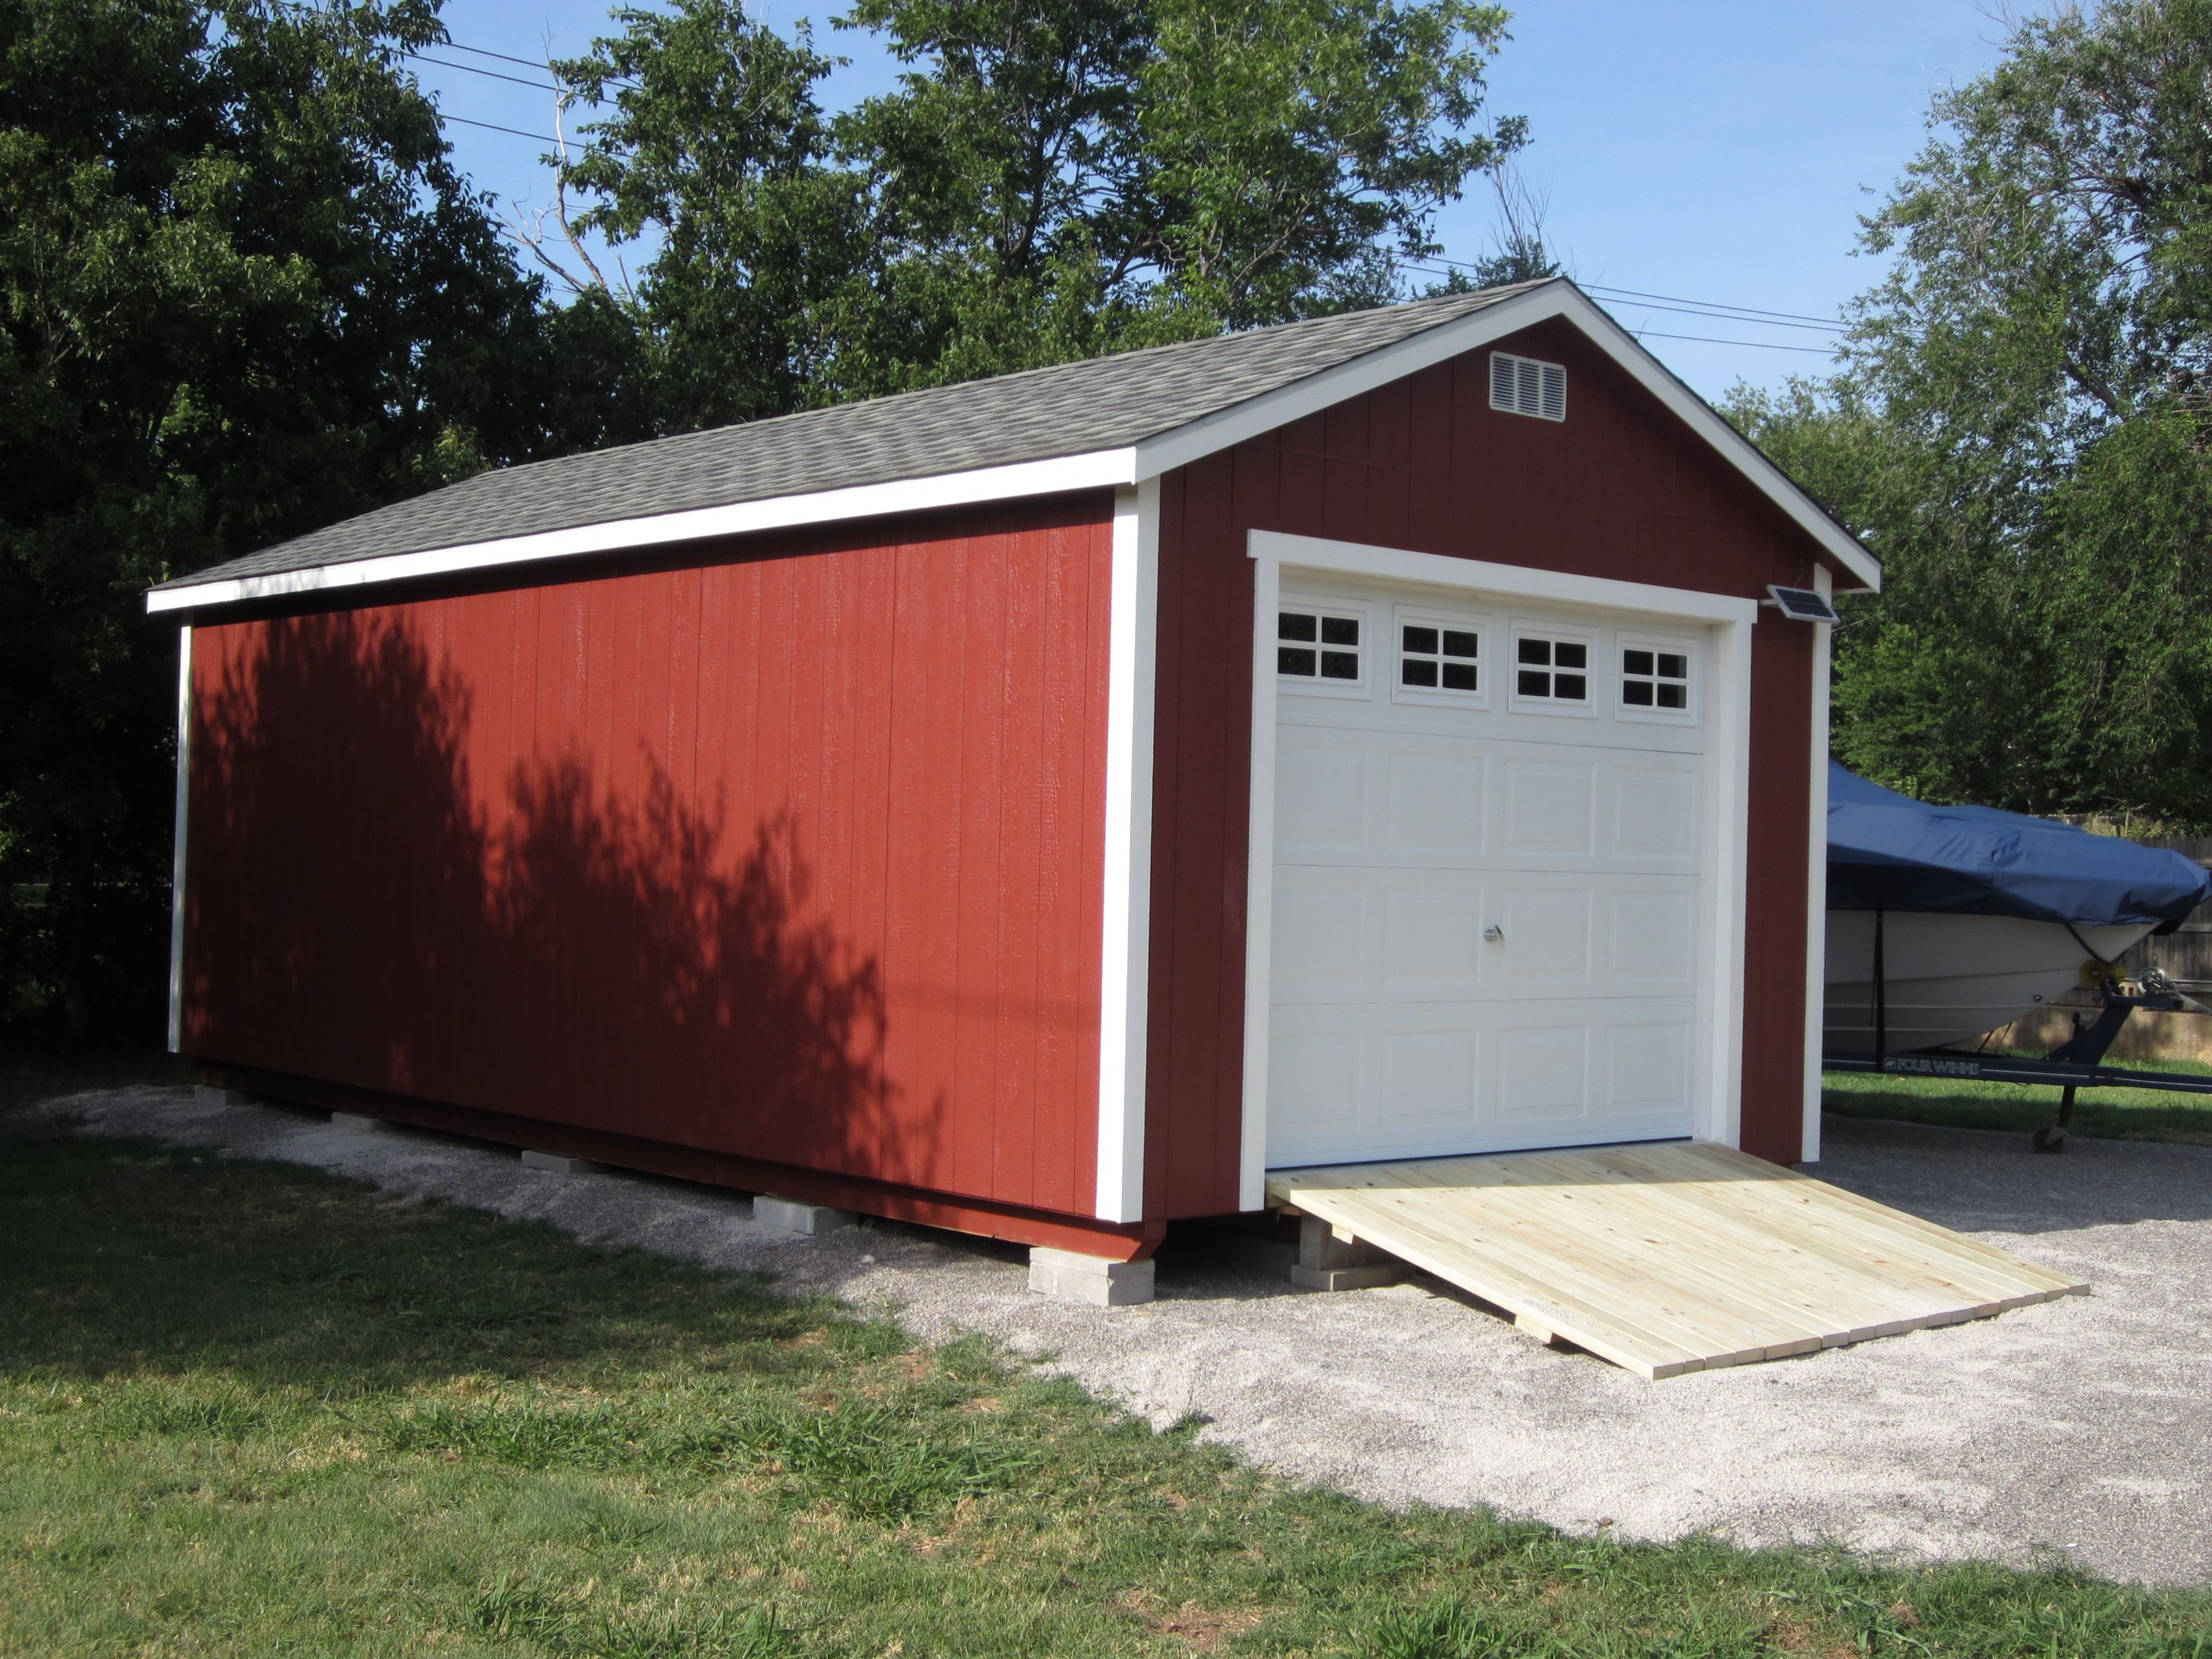 also image firewood storage smashing outside w shed outdoor duramax vinyl together stunning and d build at sheds wood x smothery comfy kits ft gardenkits large with garden plans design sale clerestory on s